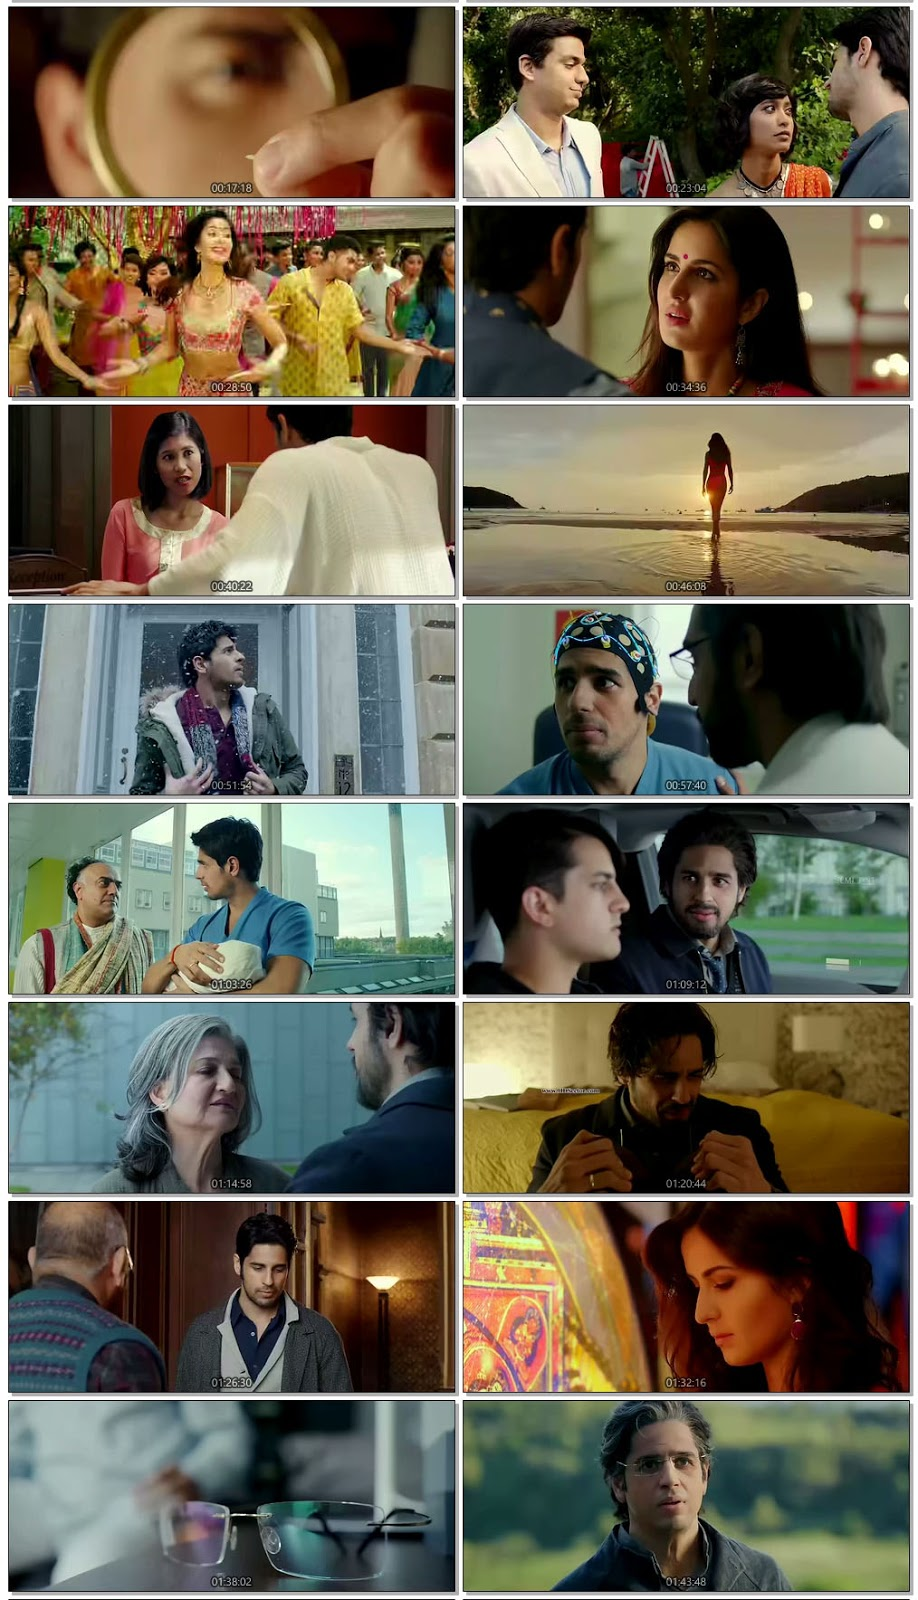 Baar Baar Dekho 2016 Bollywood Mobile HEVC Download at movies500.com